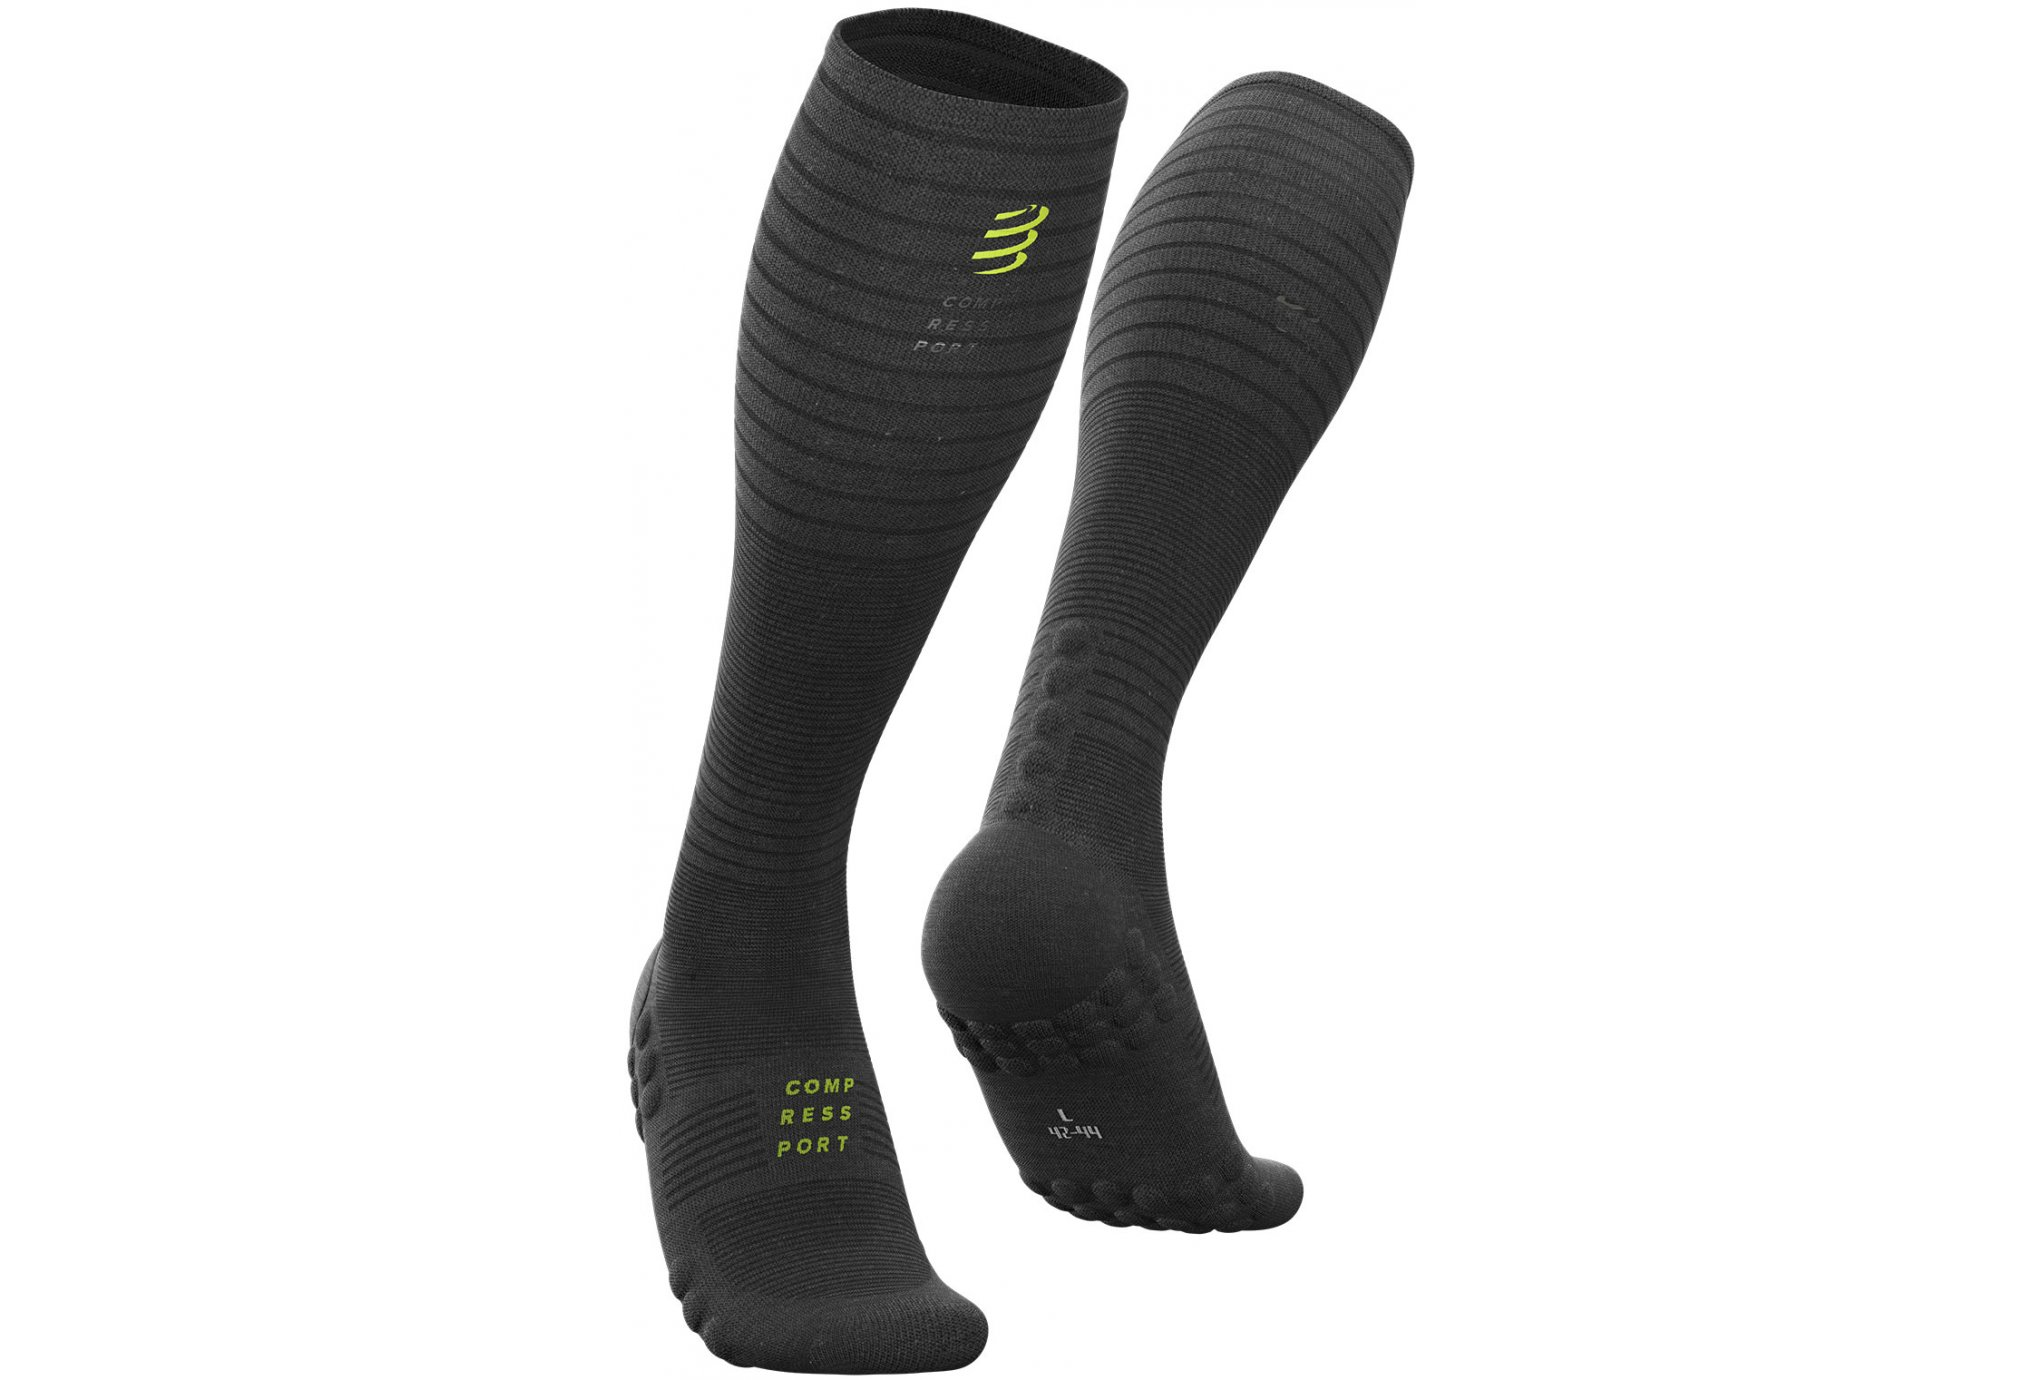 Compressport Full Socks Oxygen Black Edition Chaussettes